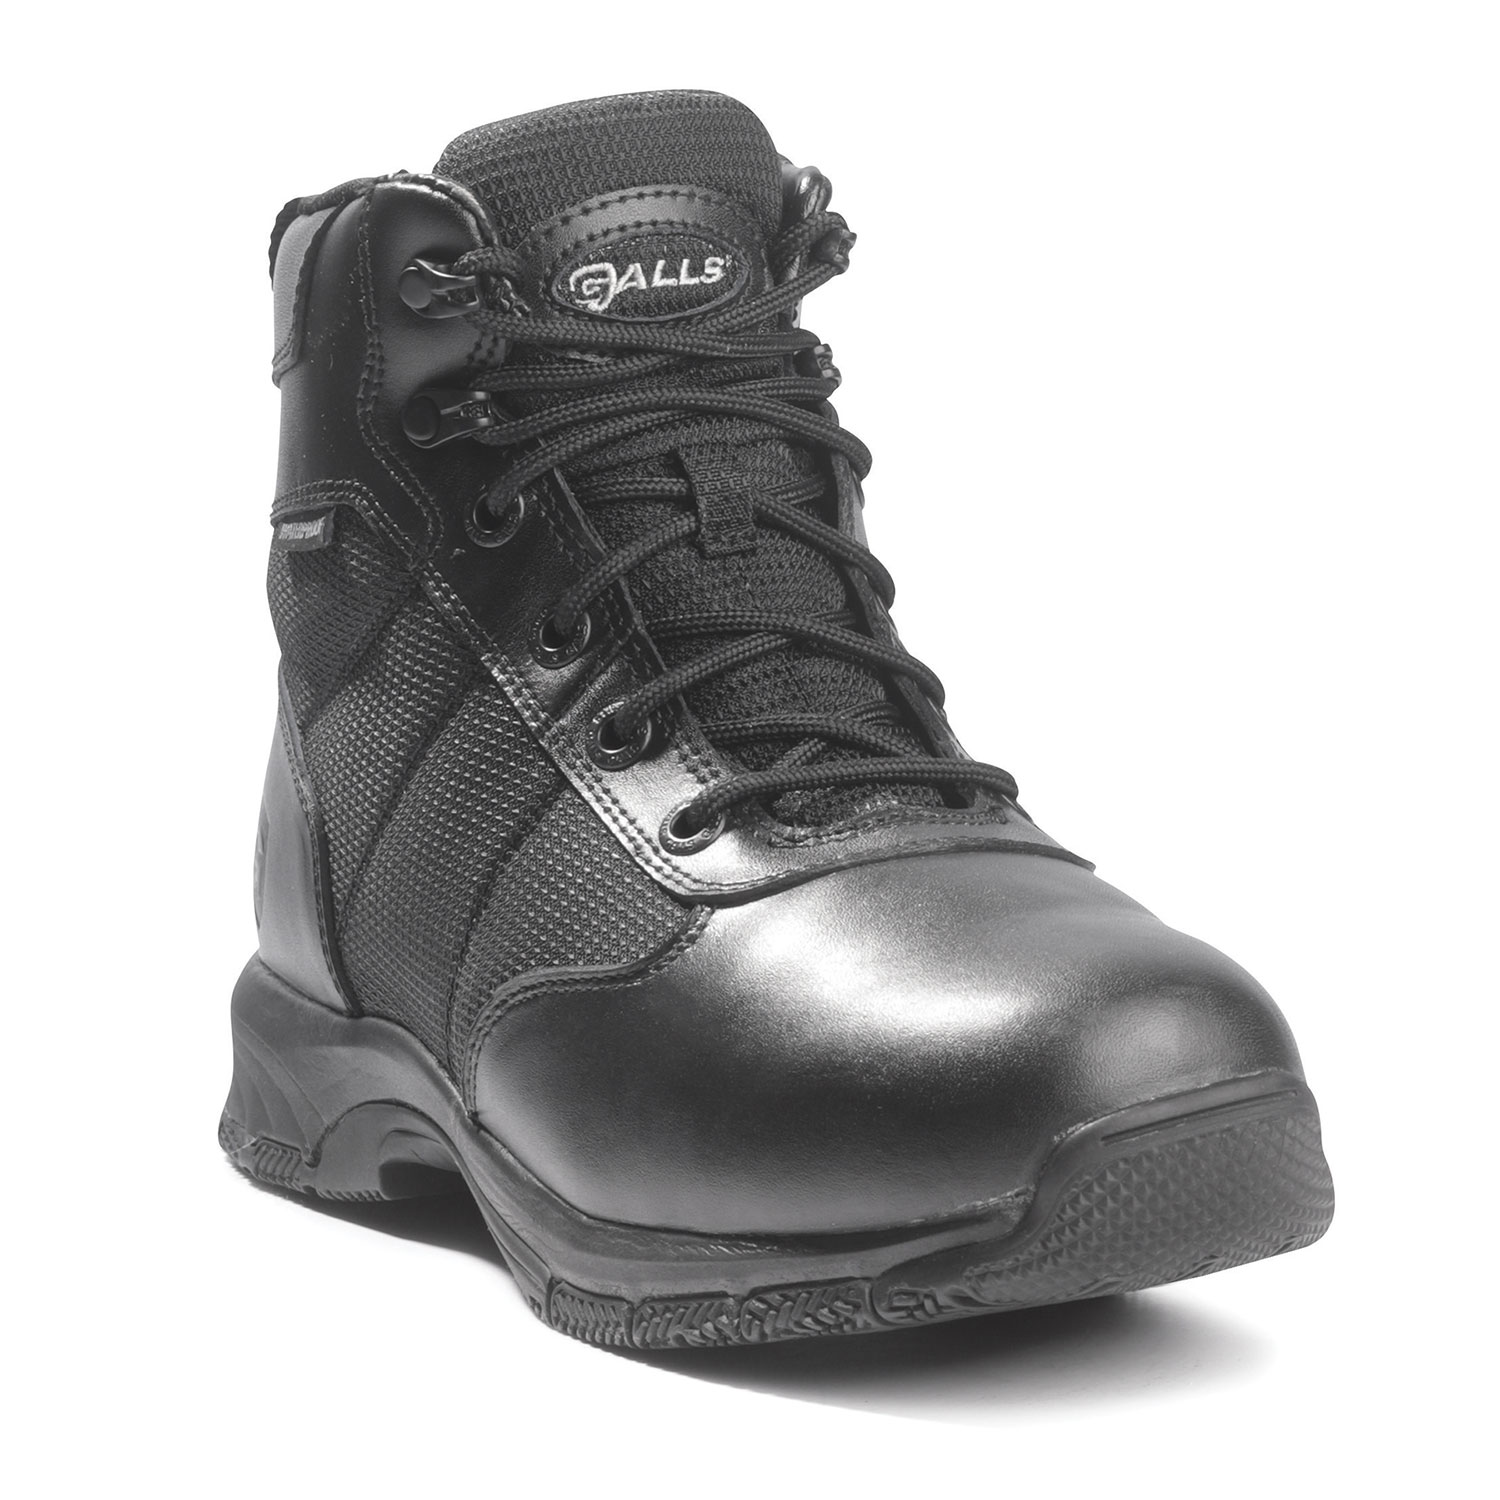 Galls G-TAC Womens Athletic 6 inch SZ WP Polishable Toe Boot